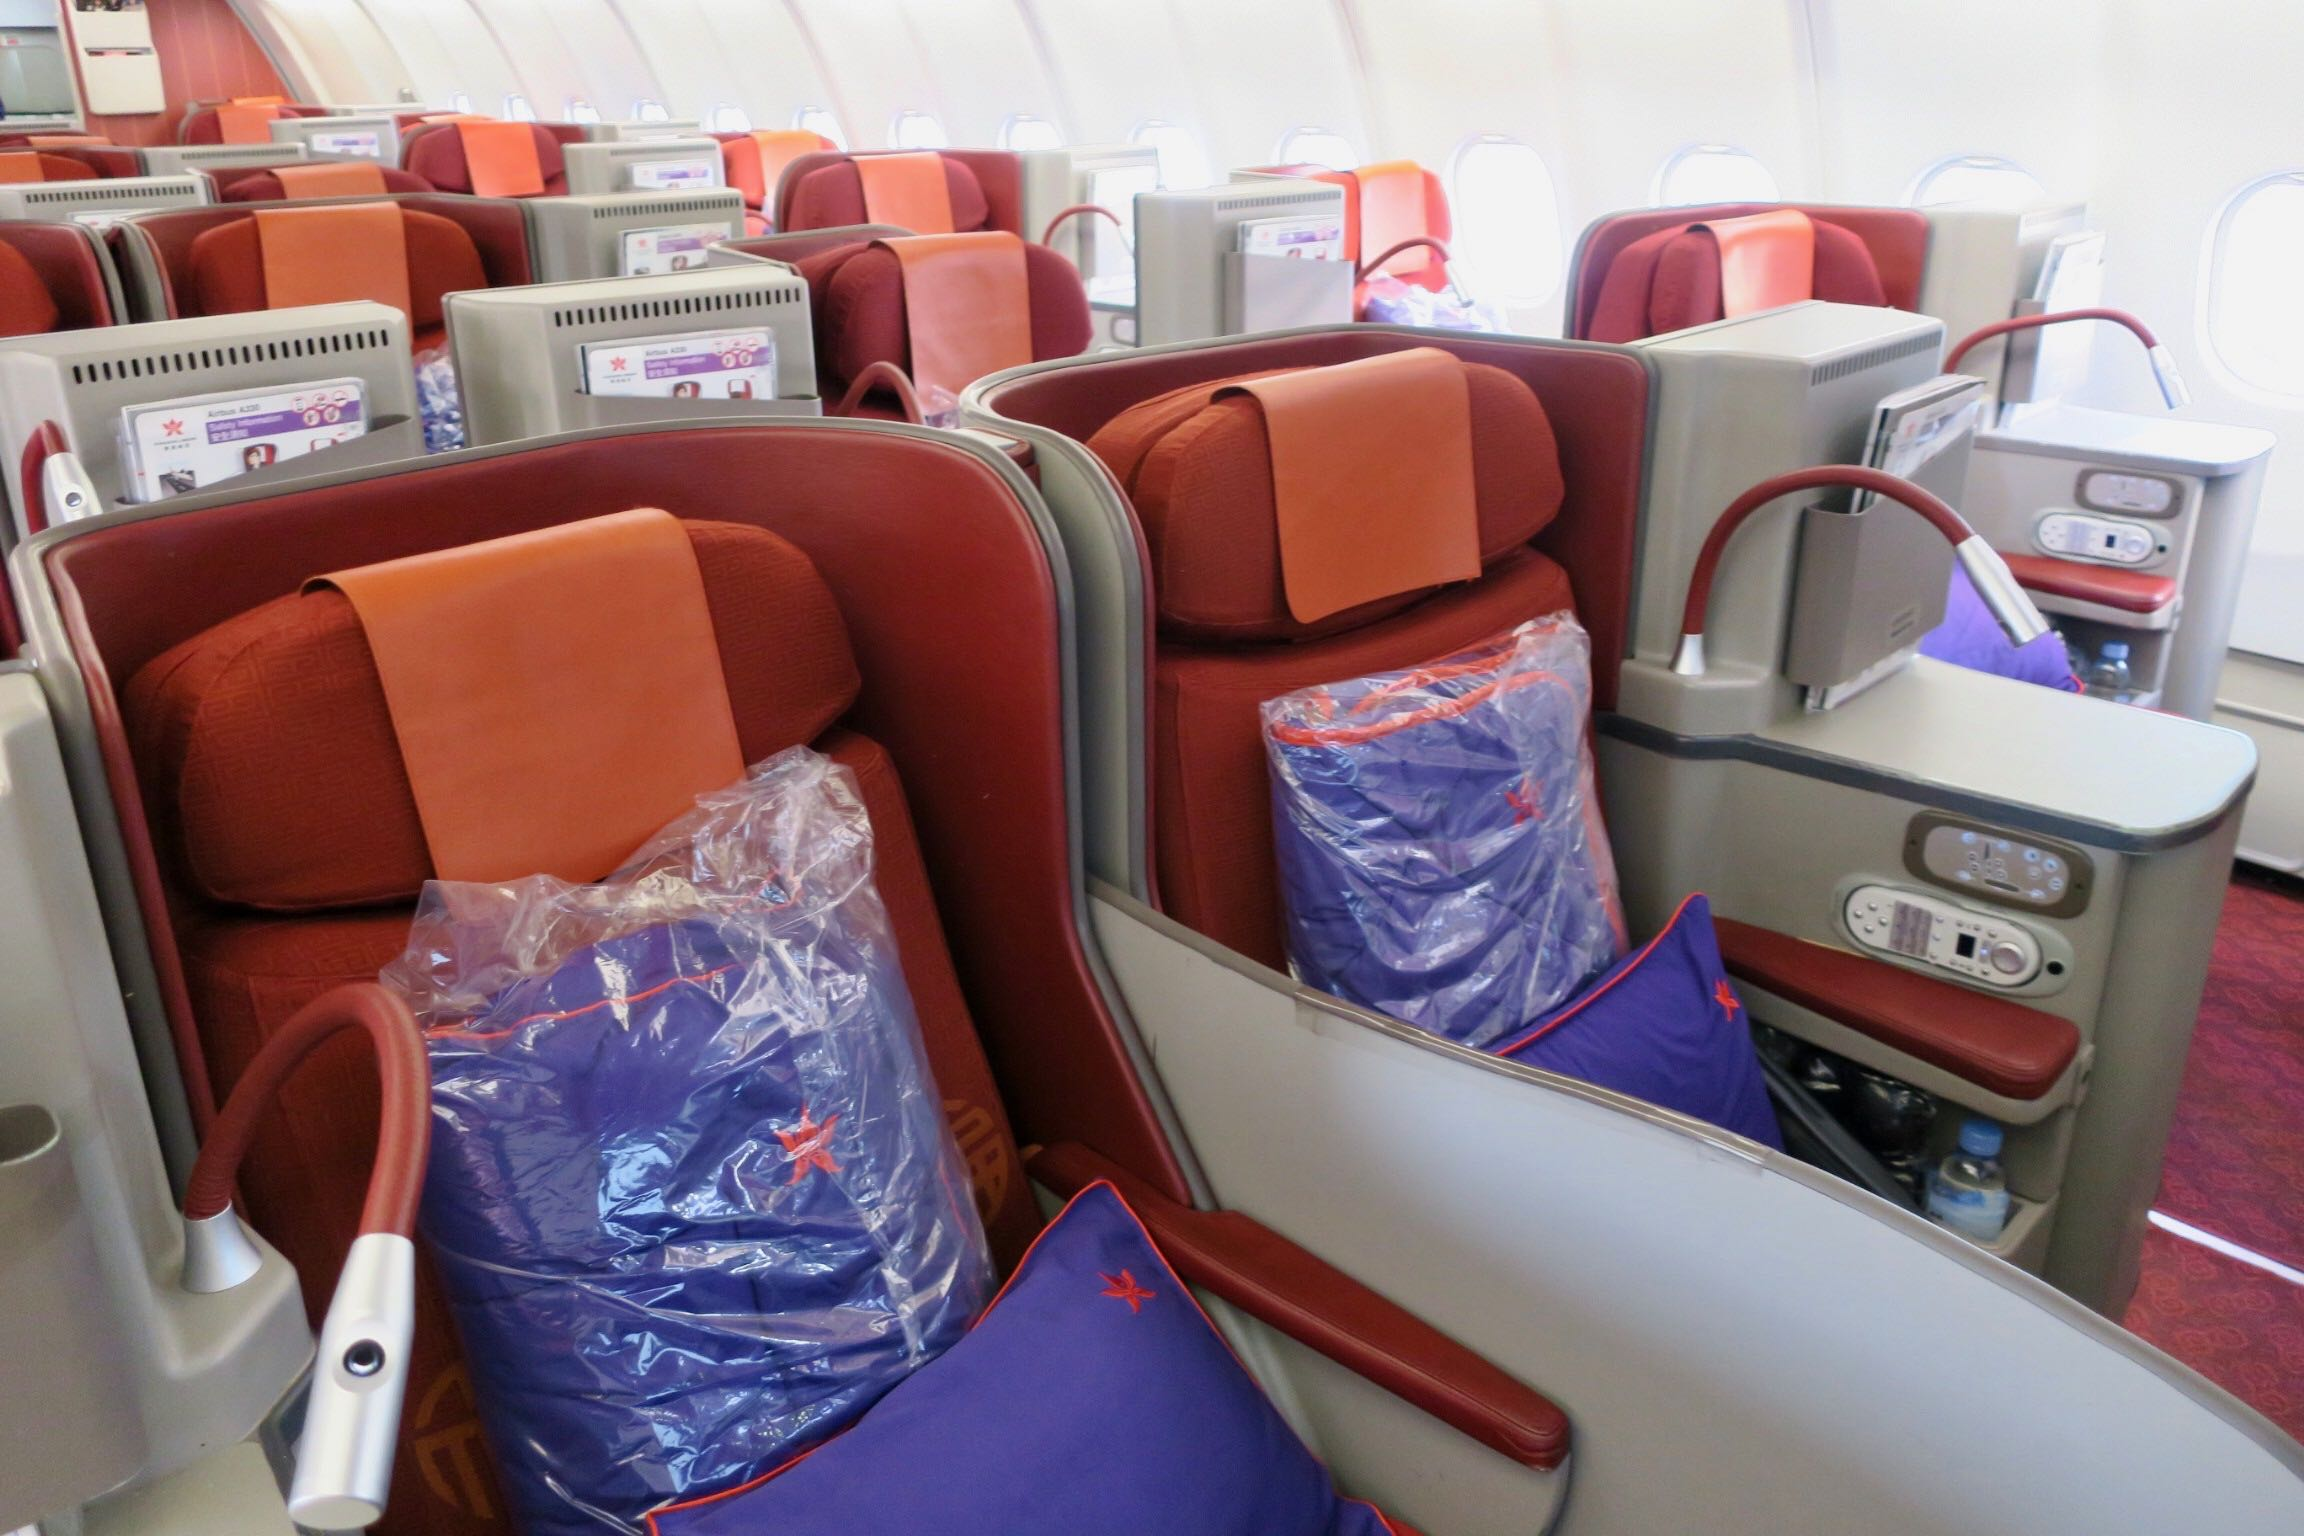 Hong Kong Airlines A330 Business Class seat